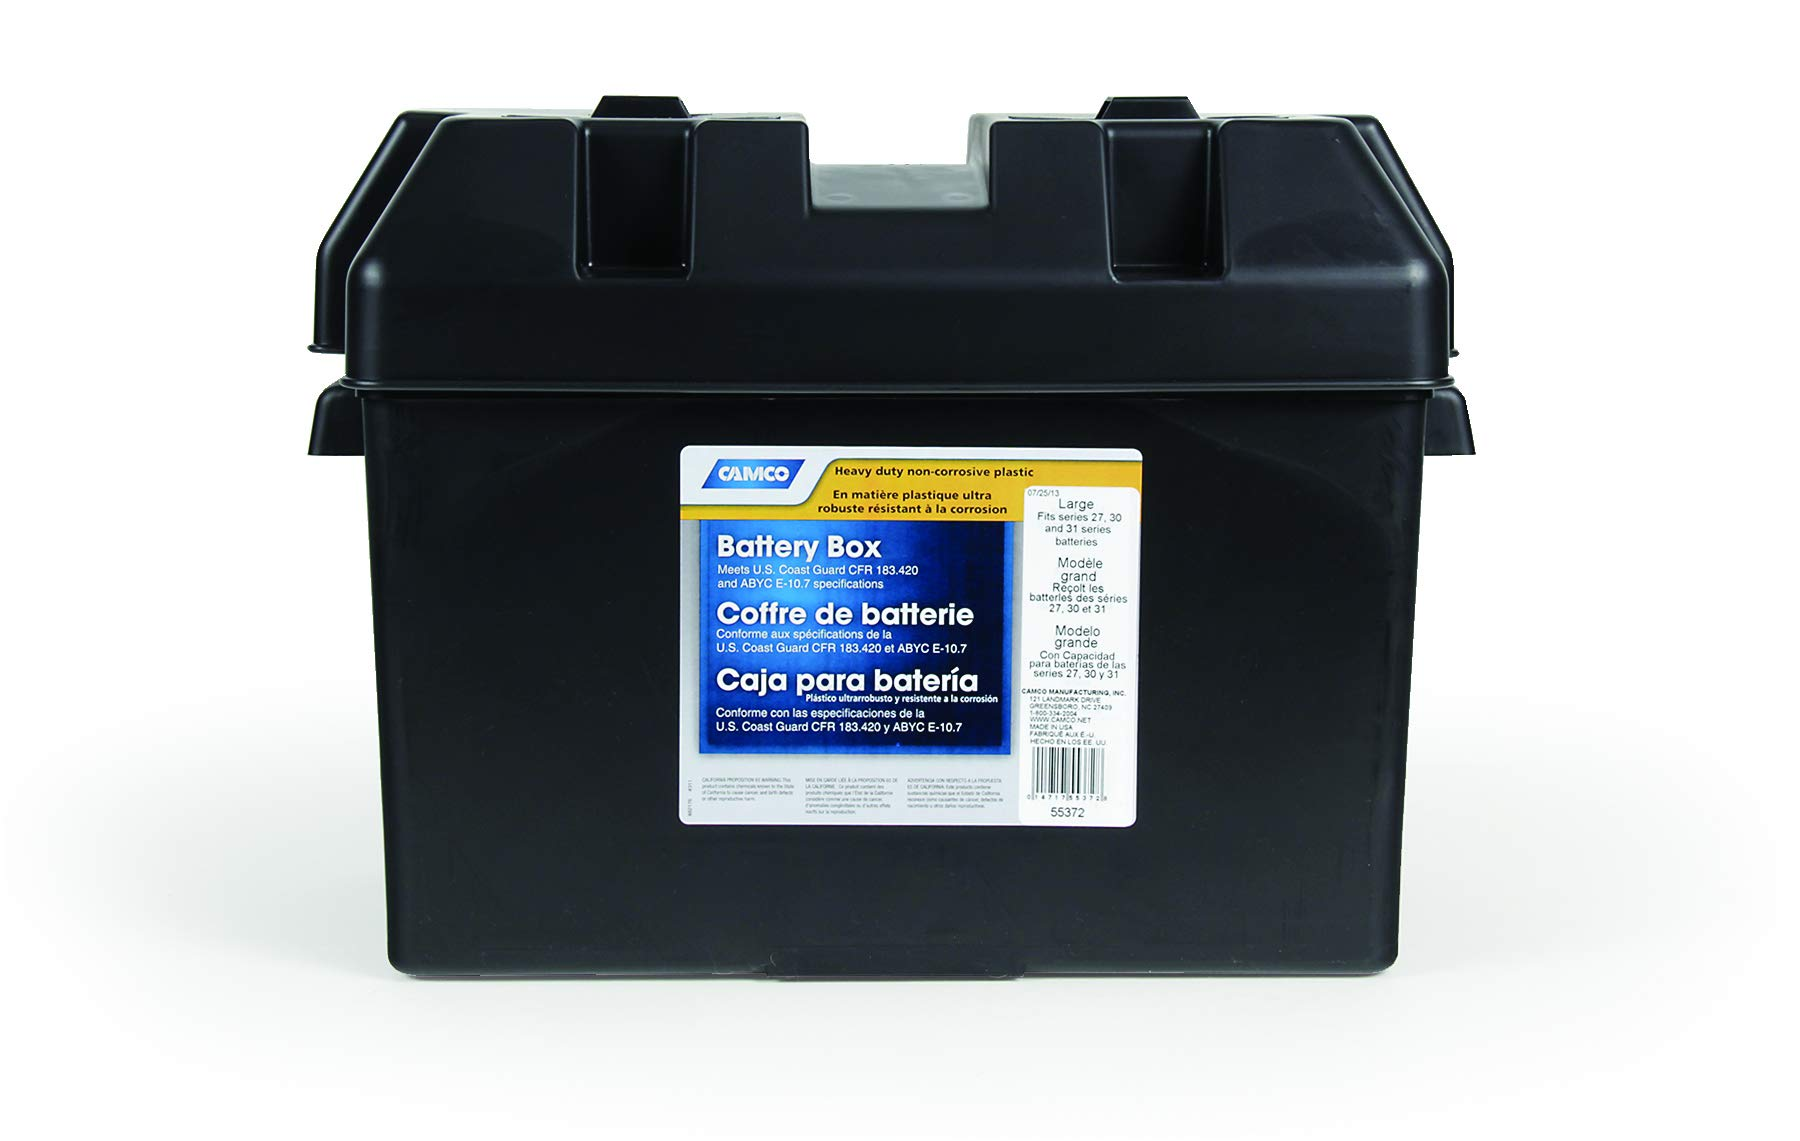 Camco 55372 Large Battery Box - Groups 27, 30 and 31 by Camco